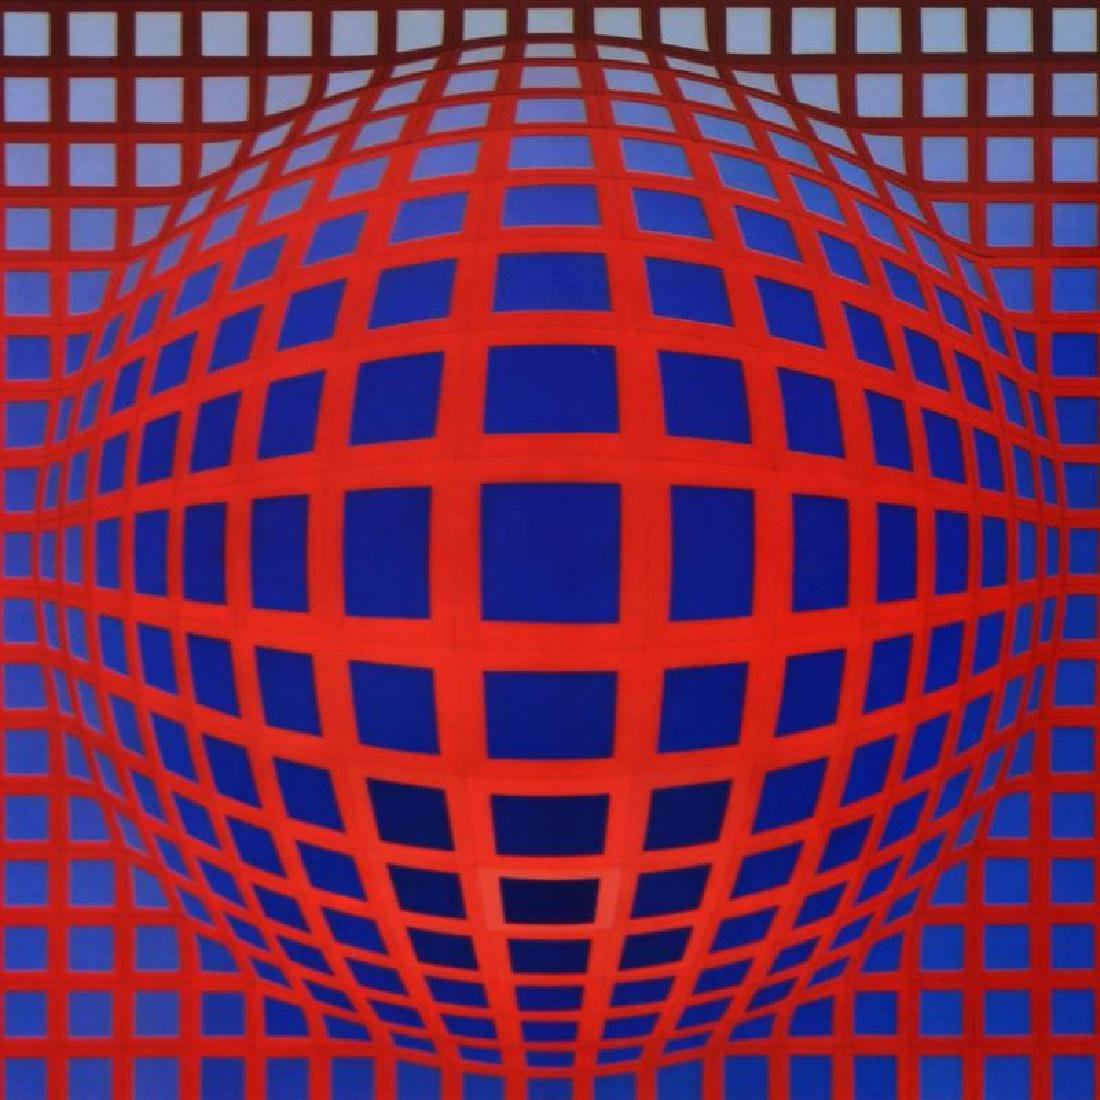 VP-RB by Vasarely (1908-1997) - 2